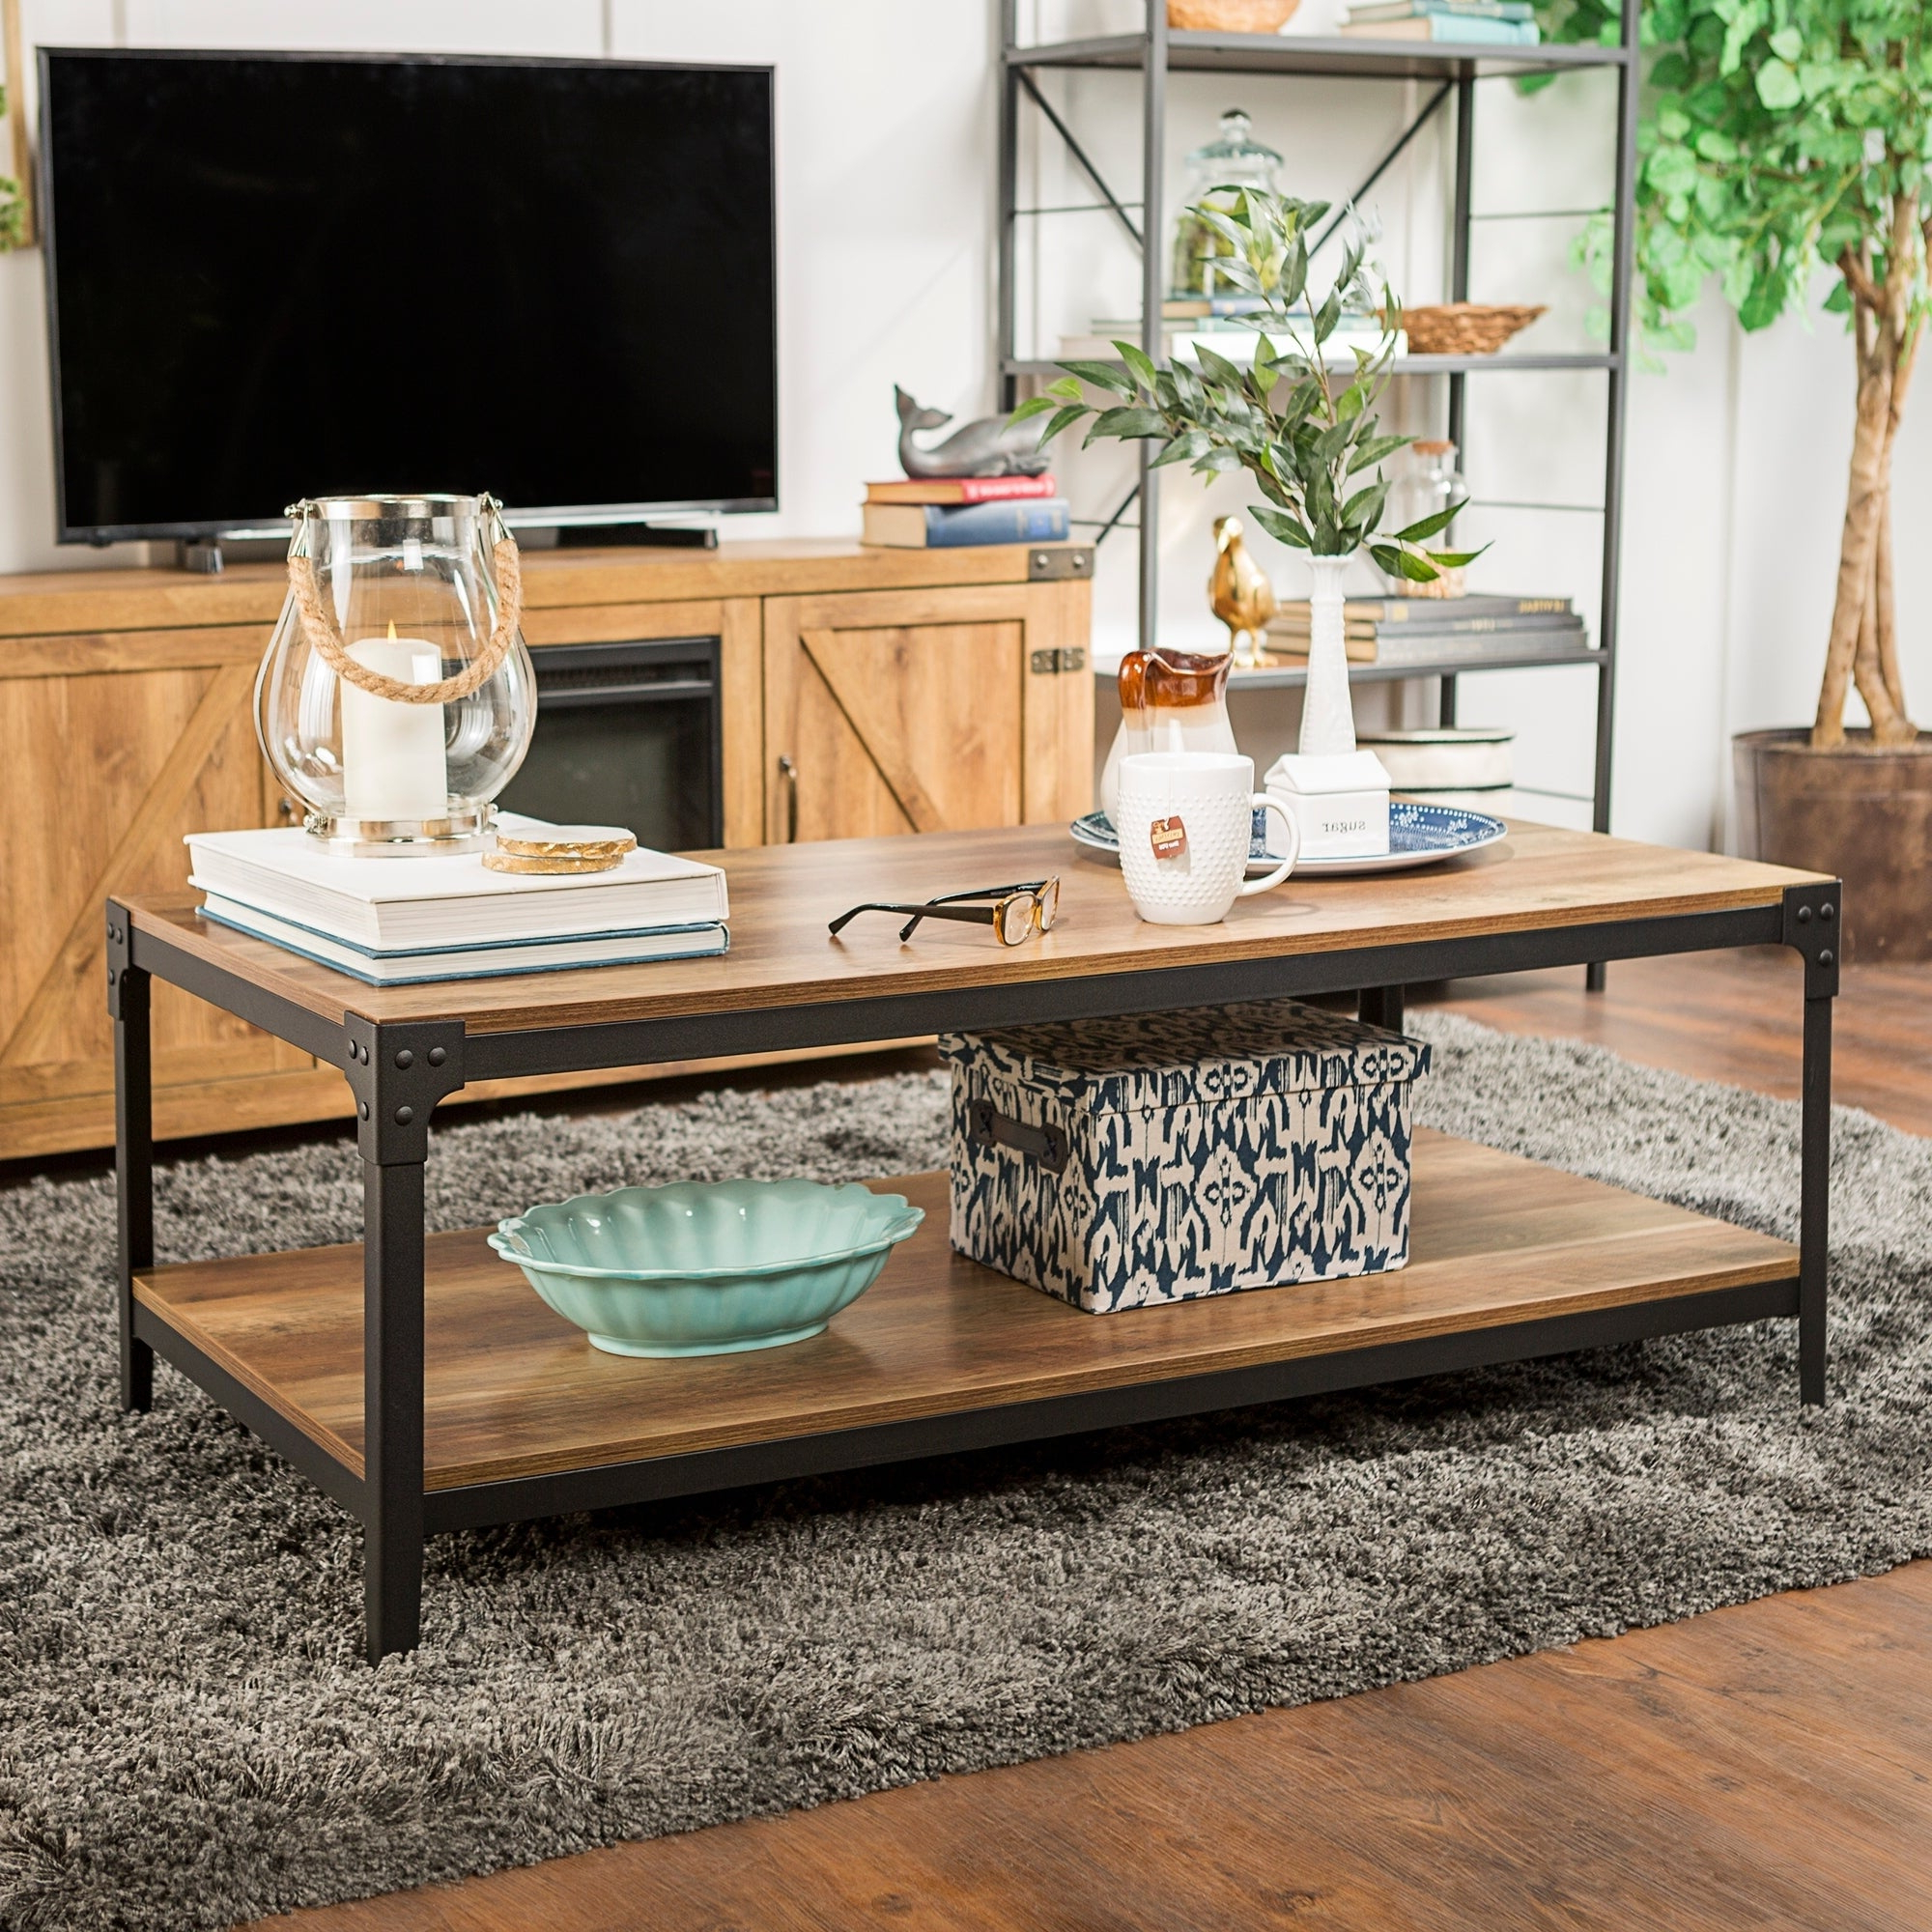 Trendy Carbon Loft Witten Angle Iron And Driftwood Coffee Tables Throughout Carbon Loft Witten Angle Iron Coffee Table – 48 X 24 X 18H (View 14 of 20)